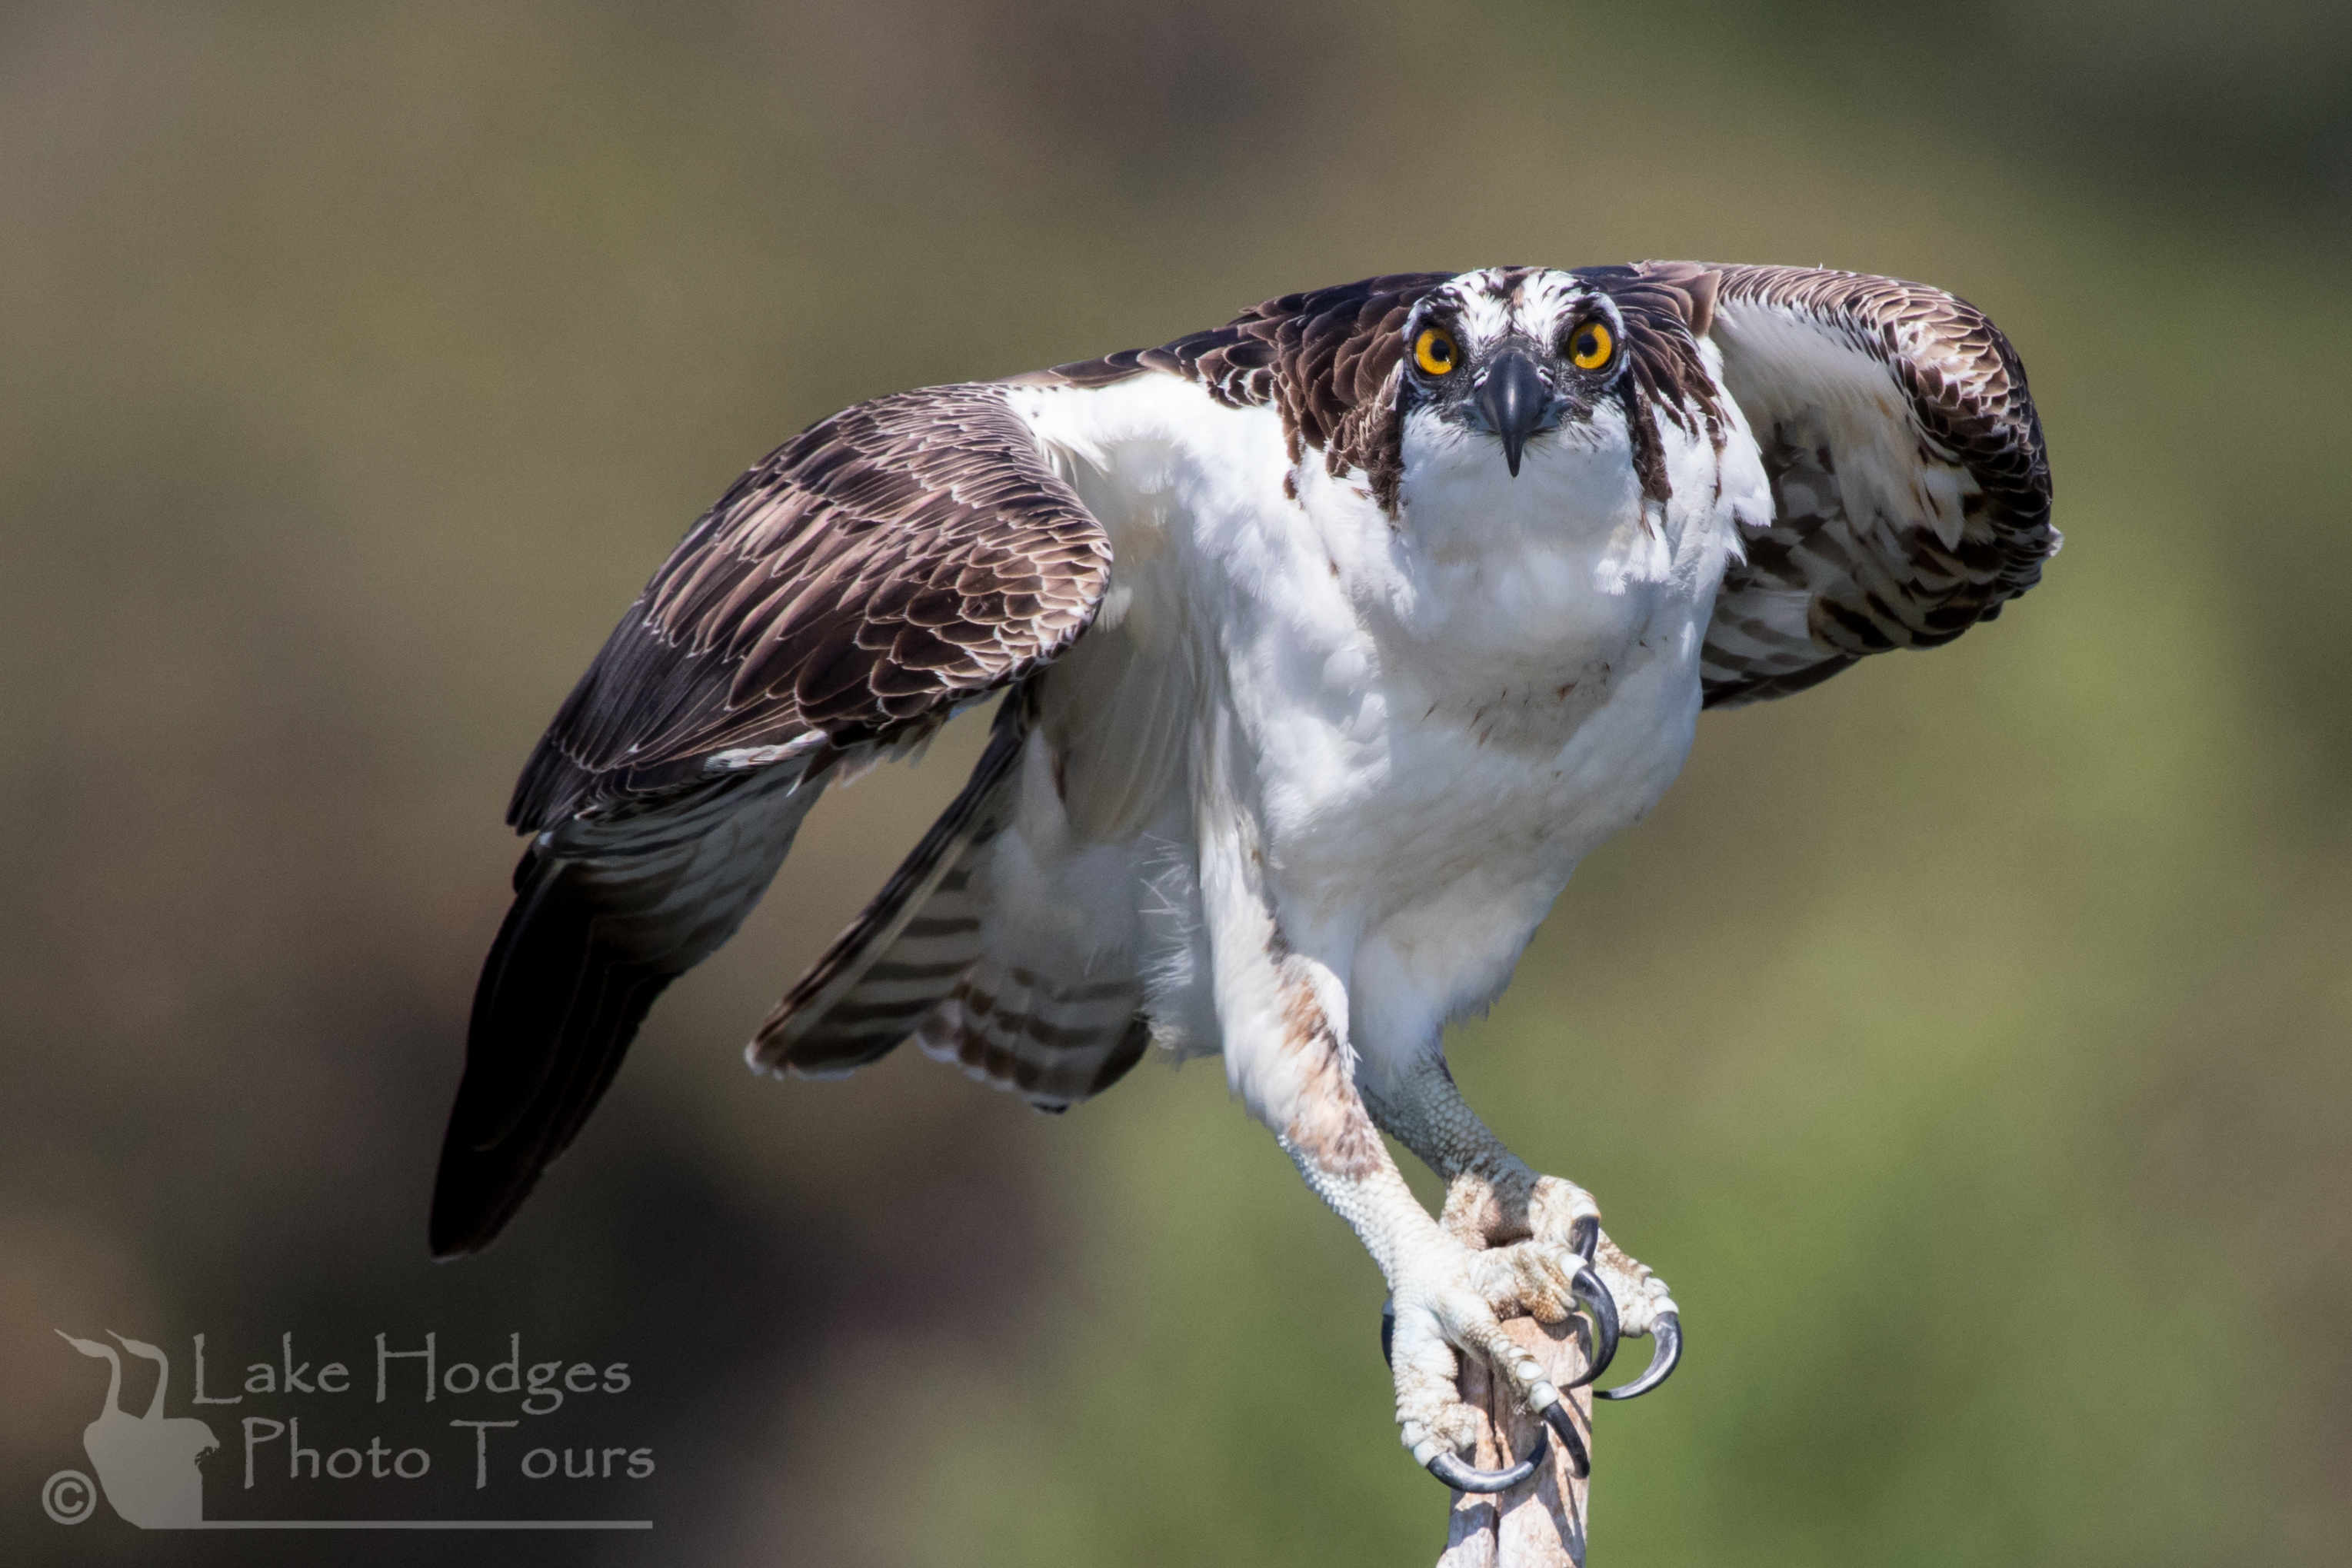 Osprey Talons at Lake Hodges Photo Tours, CA, USA